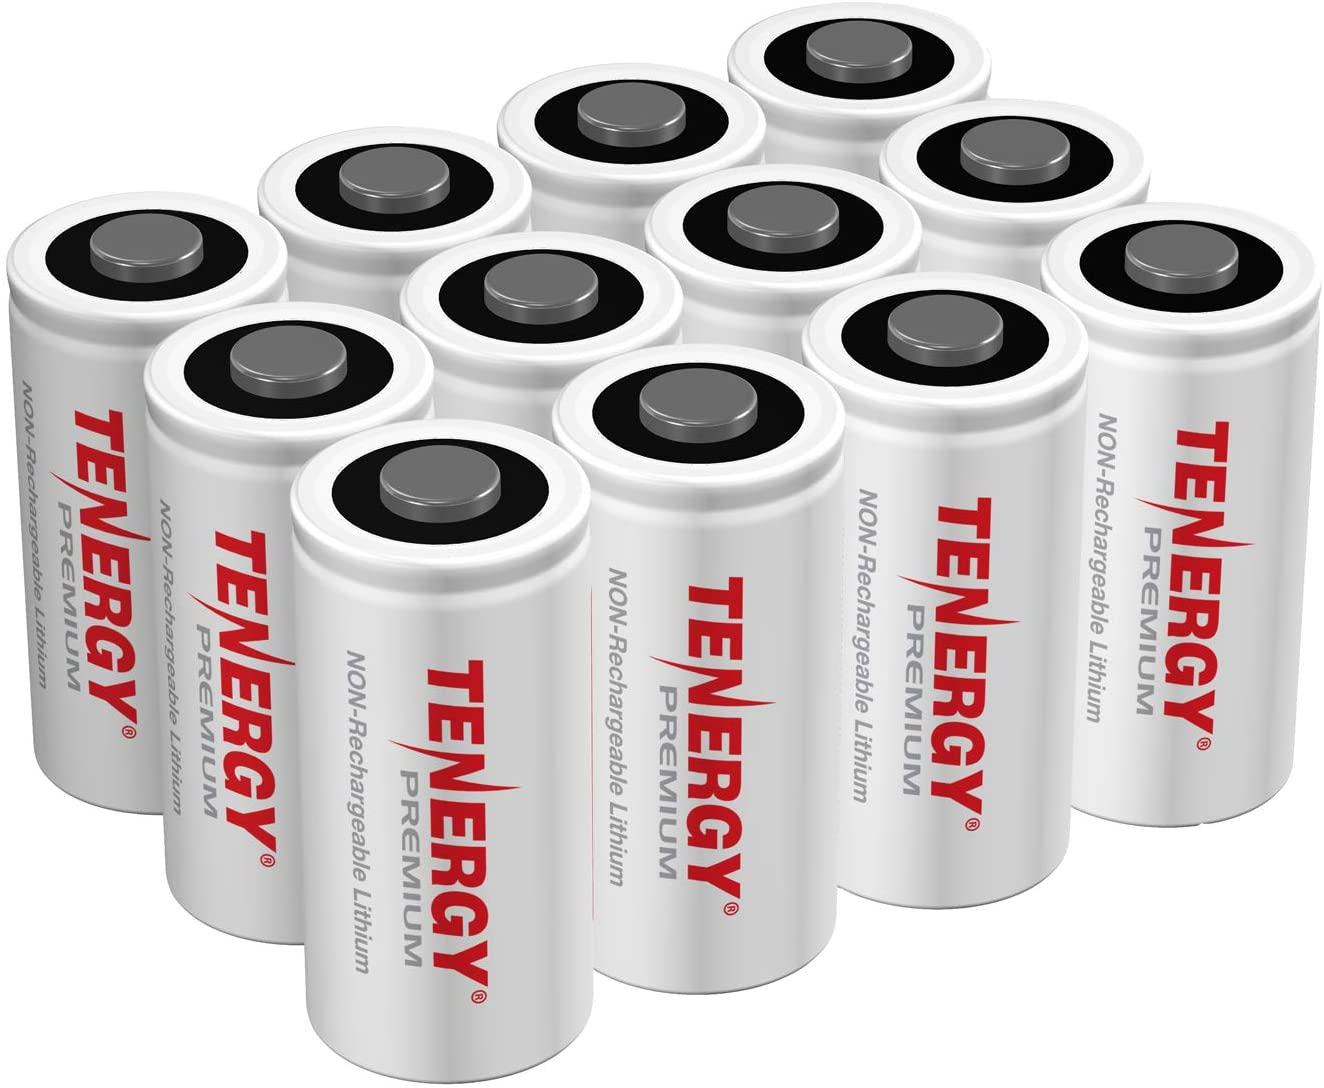 Tenergy Premium 12 Pack NonRechargeable CR123A 3V Lithium Battery, 1600mAh for Arlo Cameras, Photo Lithium Batteries, Security Cameras, Smart Sensors, and More